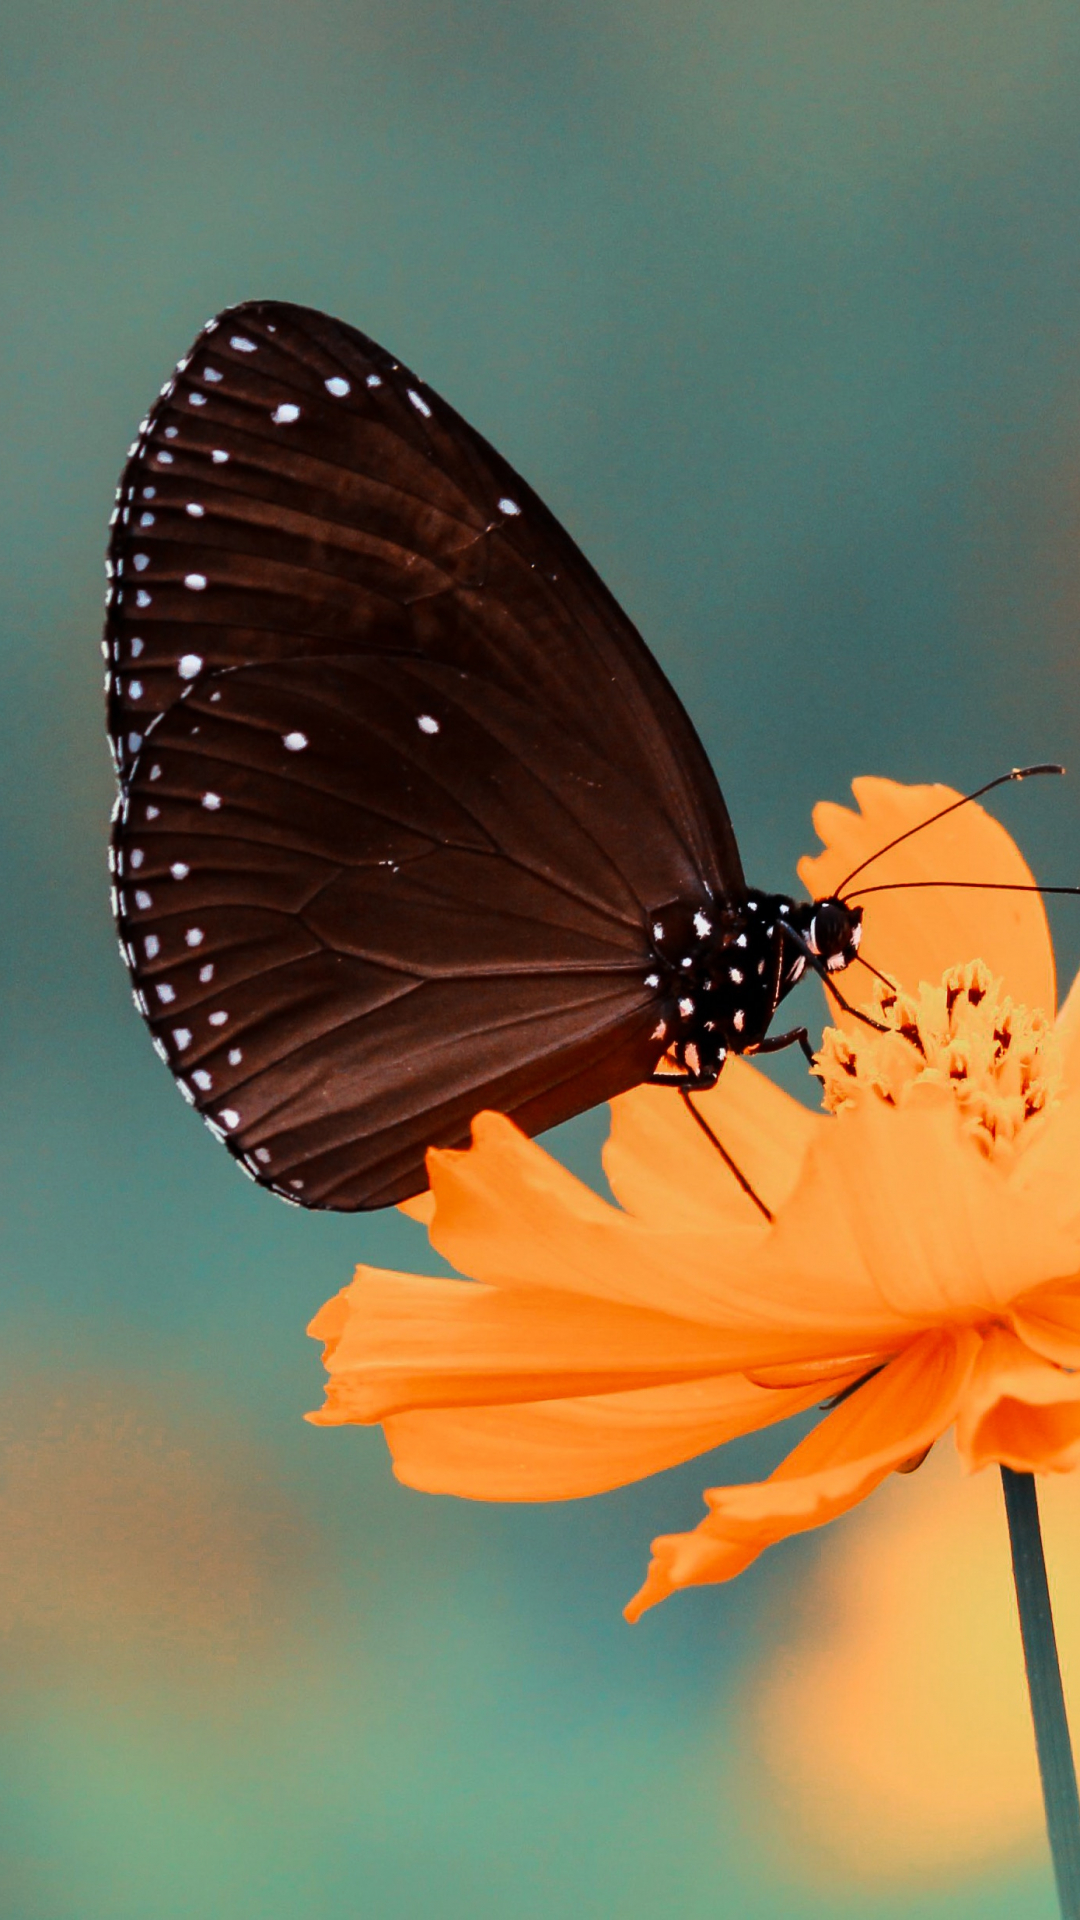 Butterfly Iphone Wallpaper Idrop News